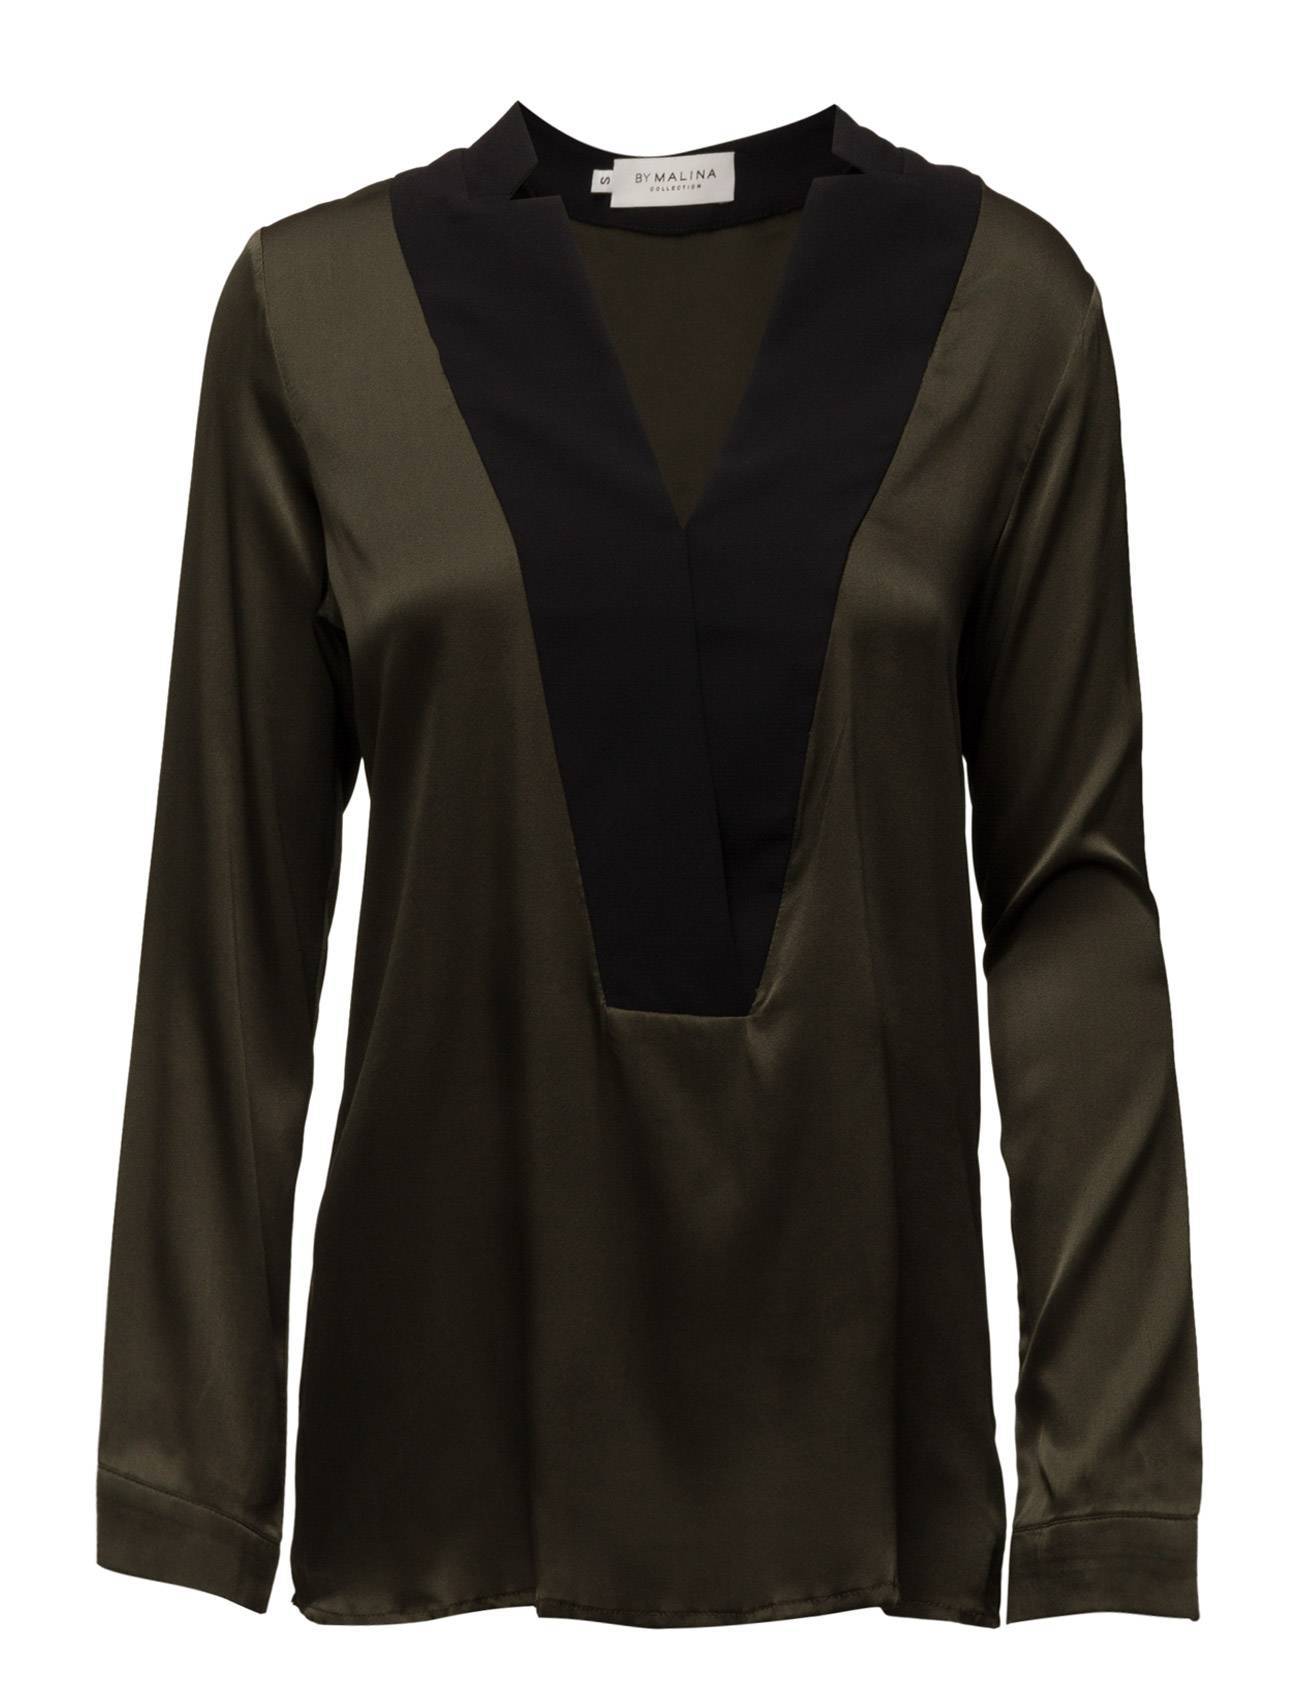 By Malina Stacy Tuxedo Blouse